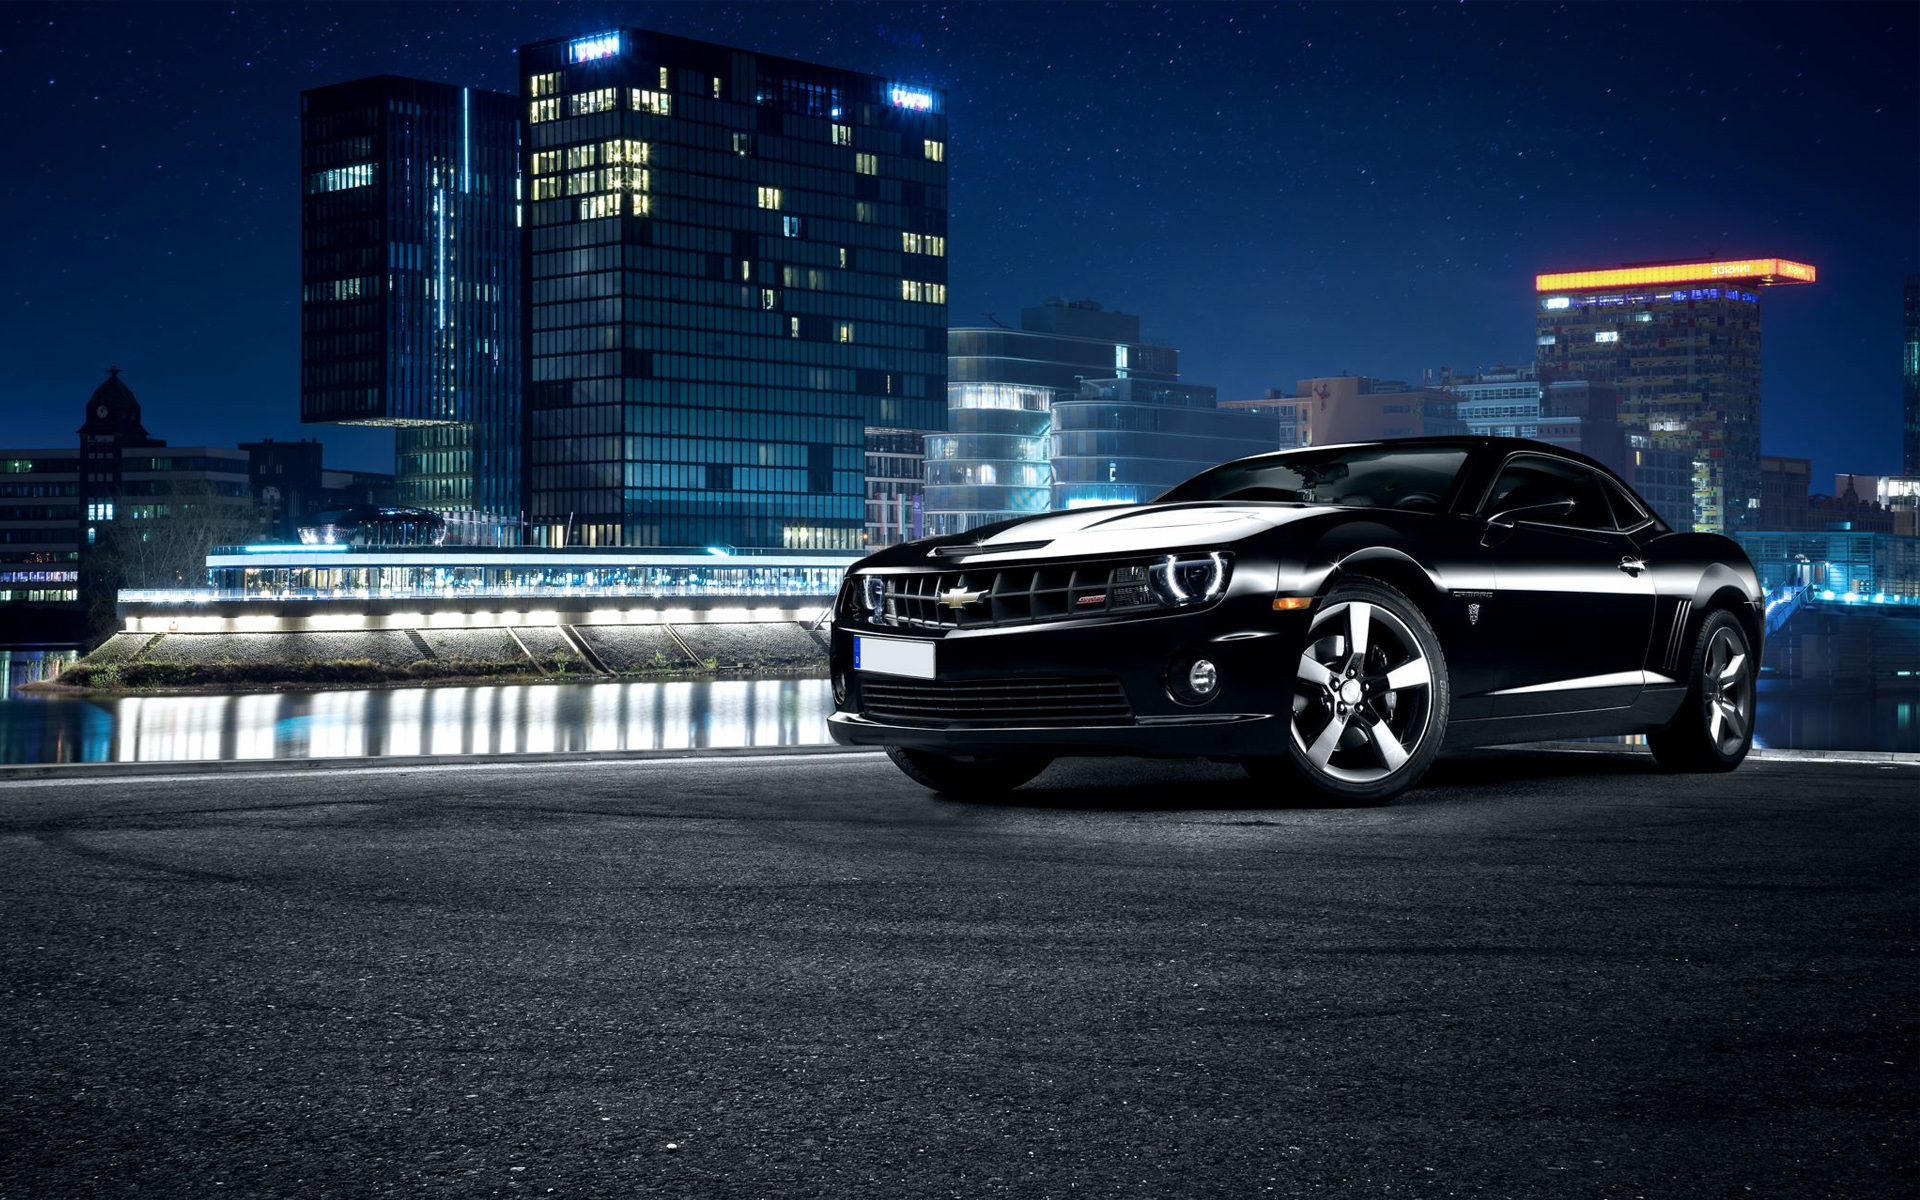 chevrolet camaro ss black wallpaper | hd car wallpapers | id #5773